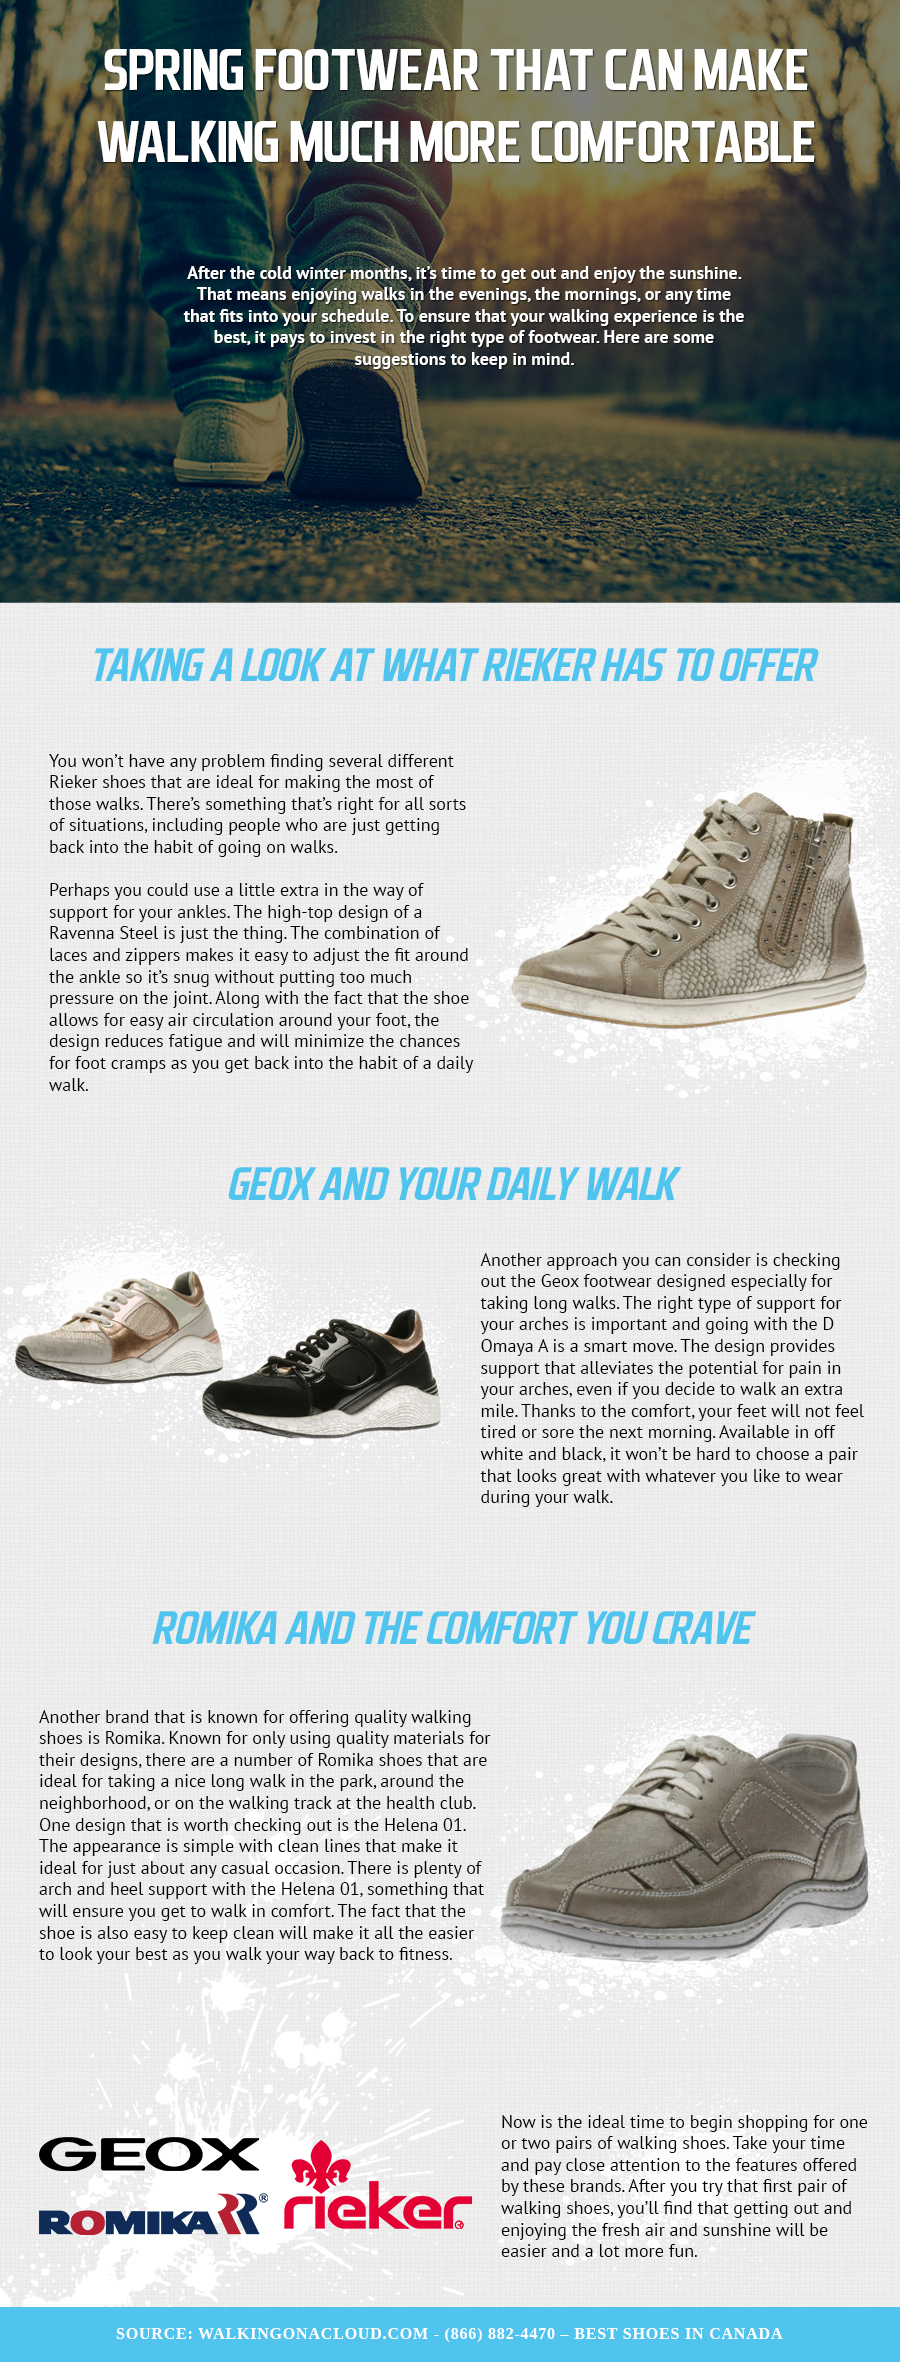 Spring-Footwear-That-Can-Make-Walking-Much-More-Comfortable